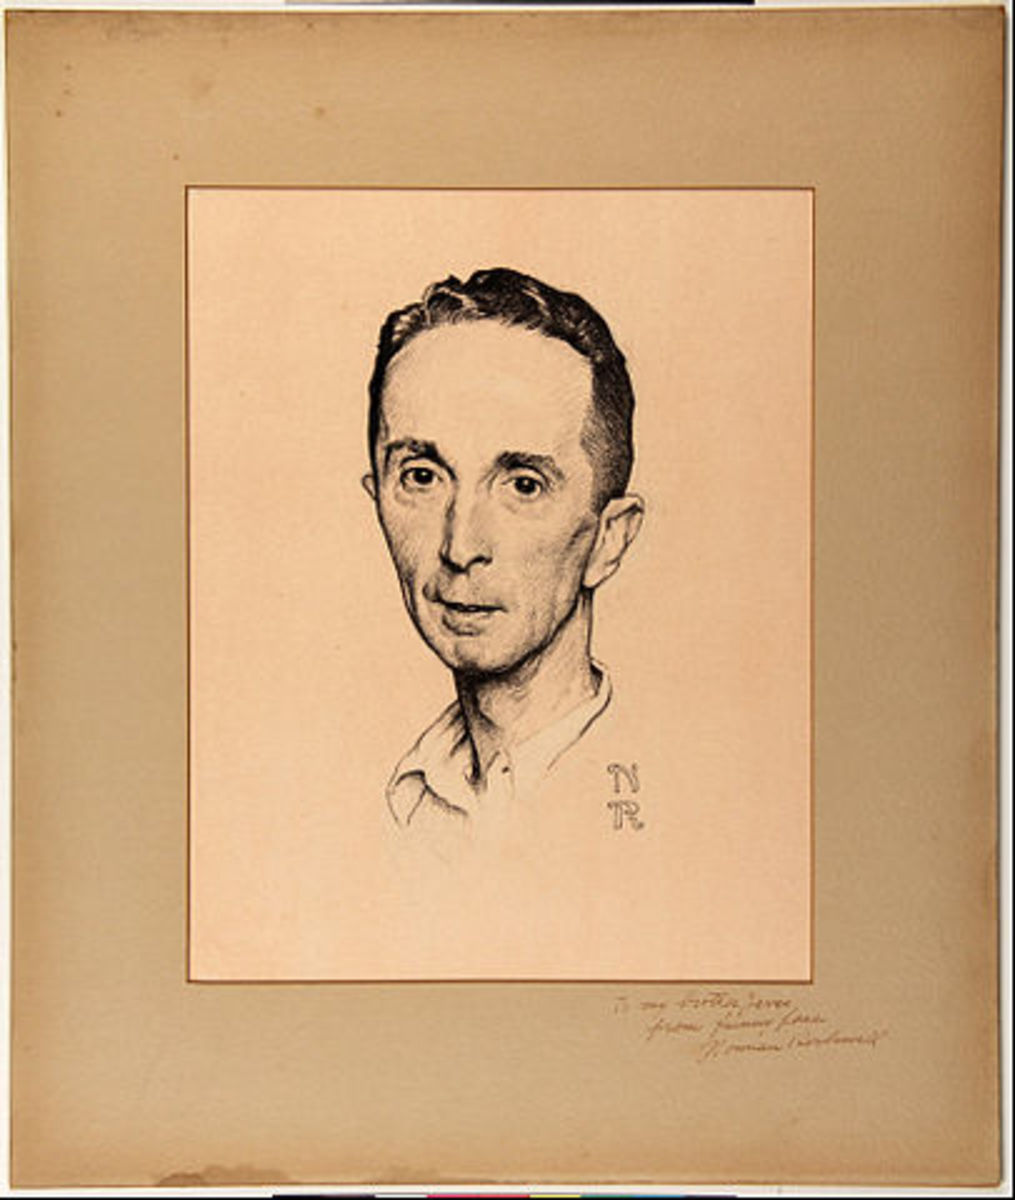 'Self-Portrait' by Norman Rockwell (circa 1920)